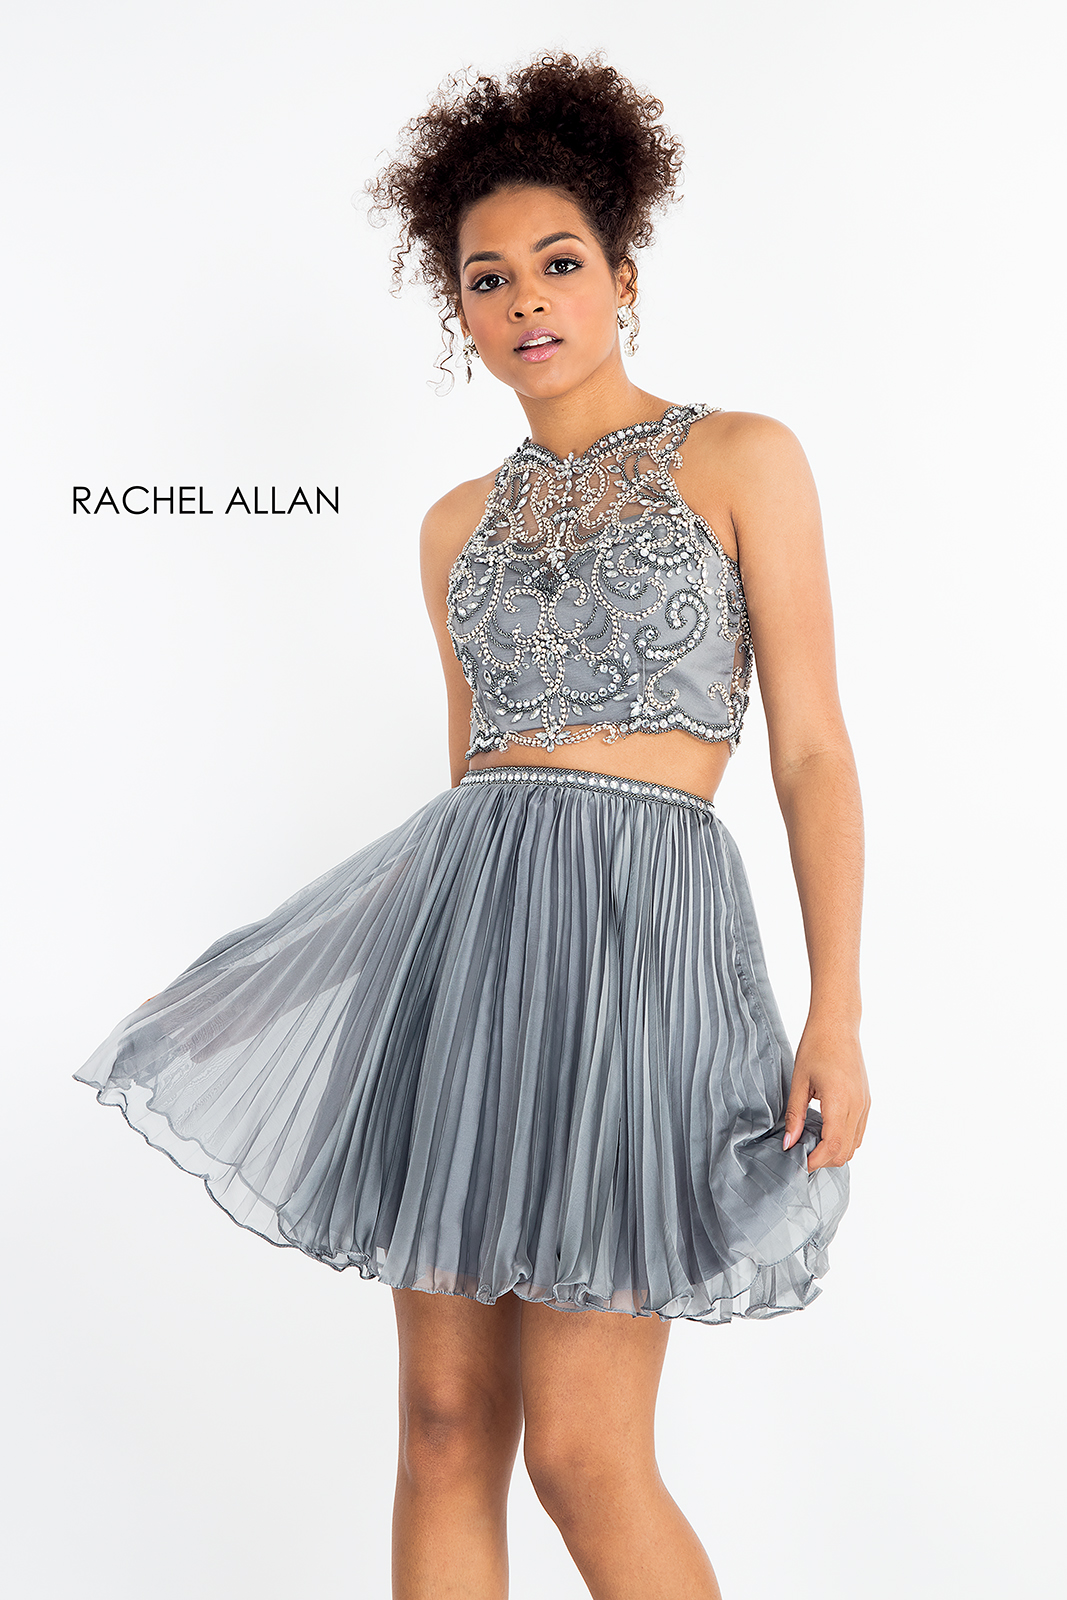 High Neckline Two-Piece Homecoming Dresses in Silver/gunmetal Color